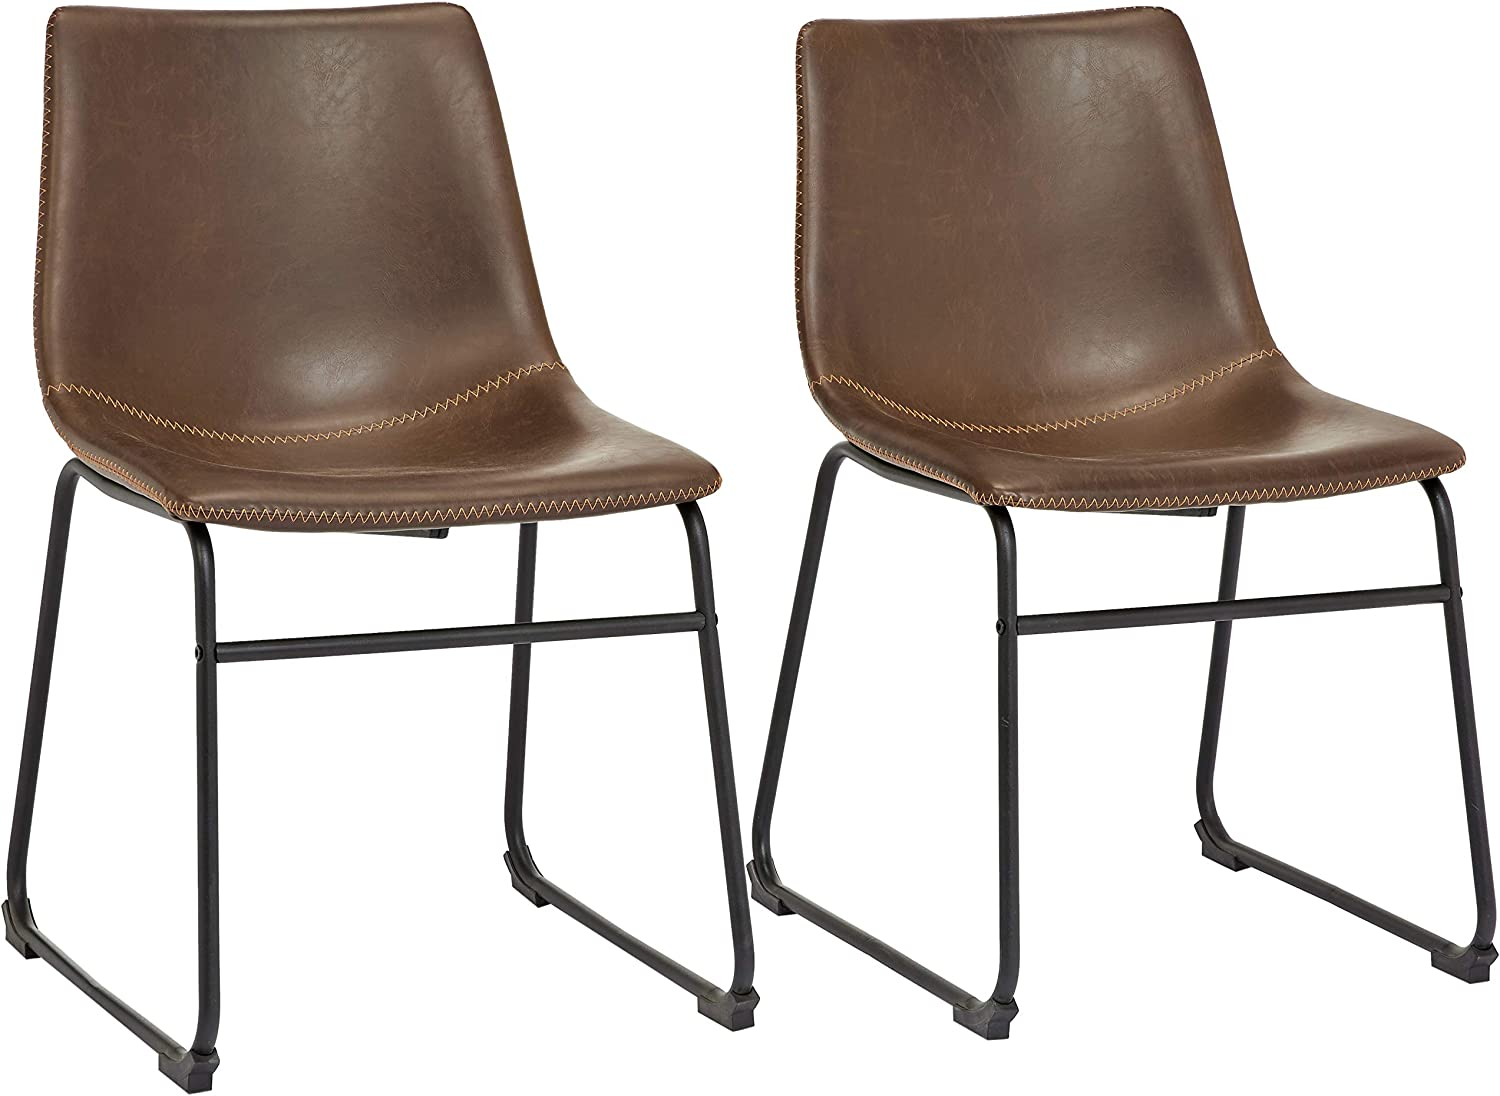 Amazon Com Phoenix Home Pu Leather Dining Chair Set Of 2 18 11 Length X 21 65 Width X 30 7 Height Brown Furniture Decor